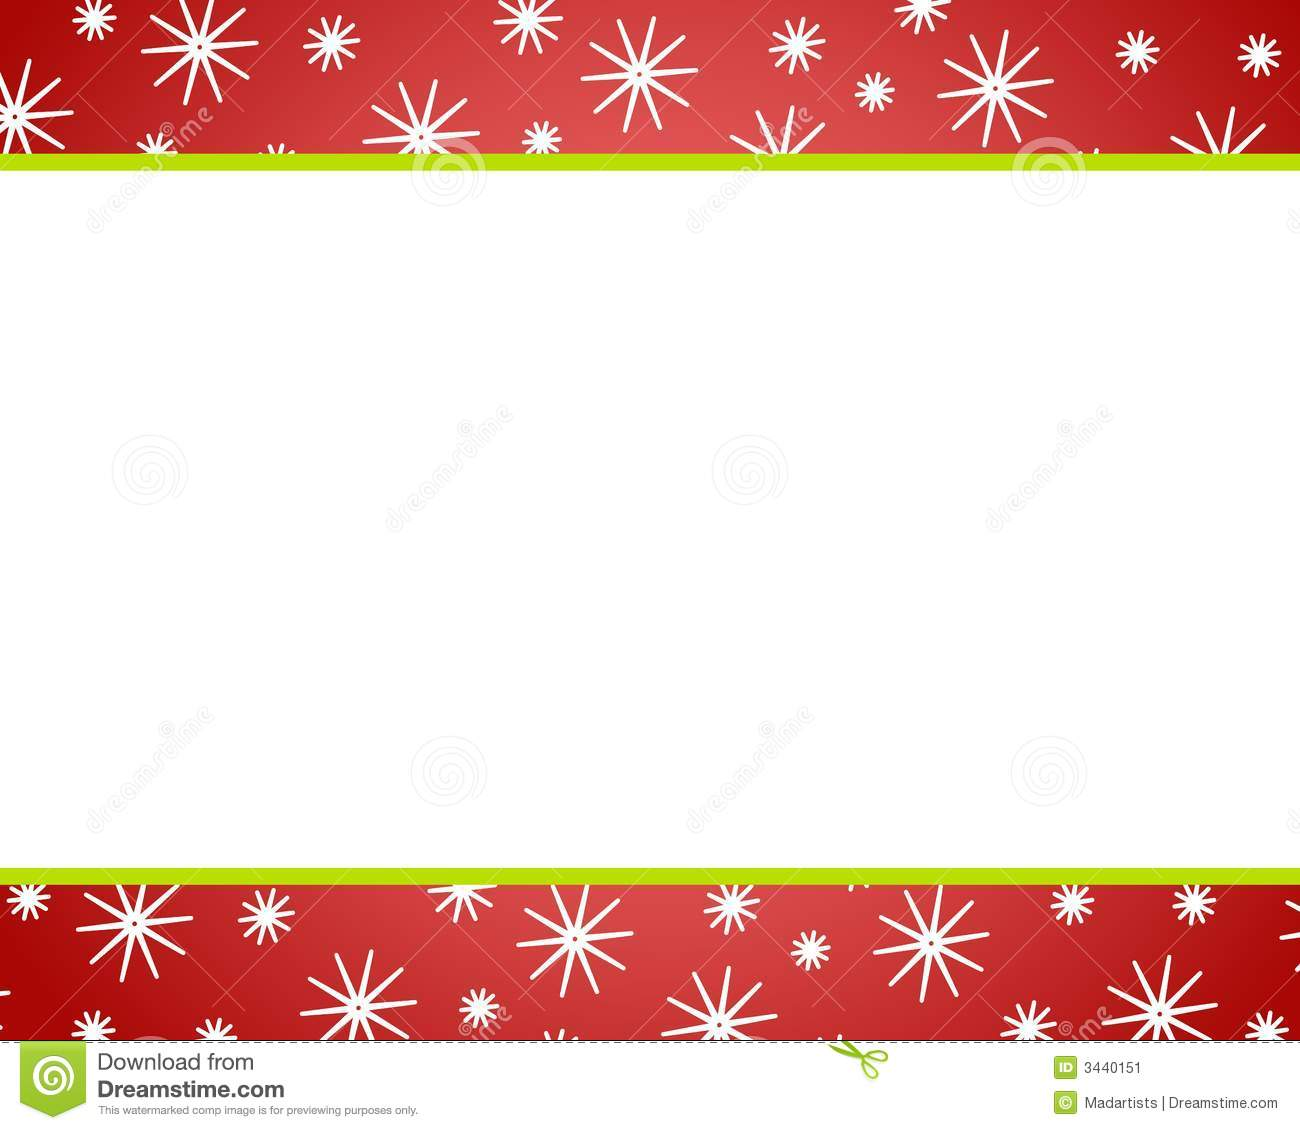 Christmas Borders Clipart.Red Christmas Snow Borders Stock Illustration Illustration